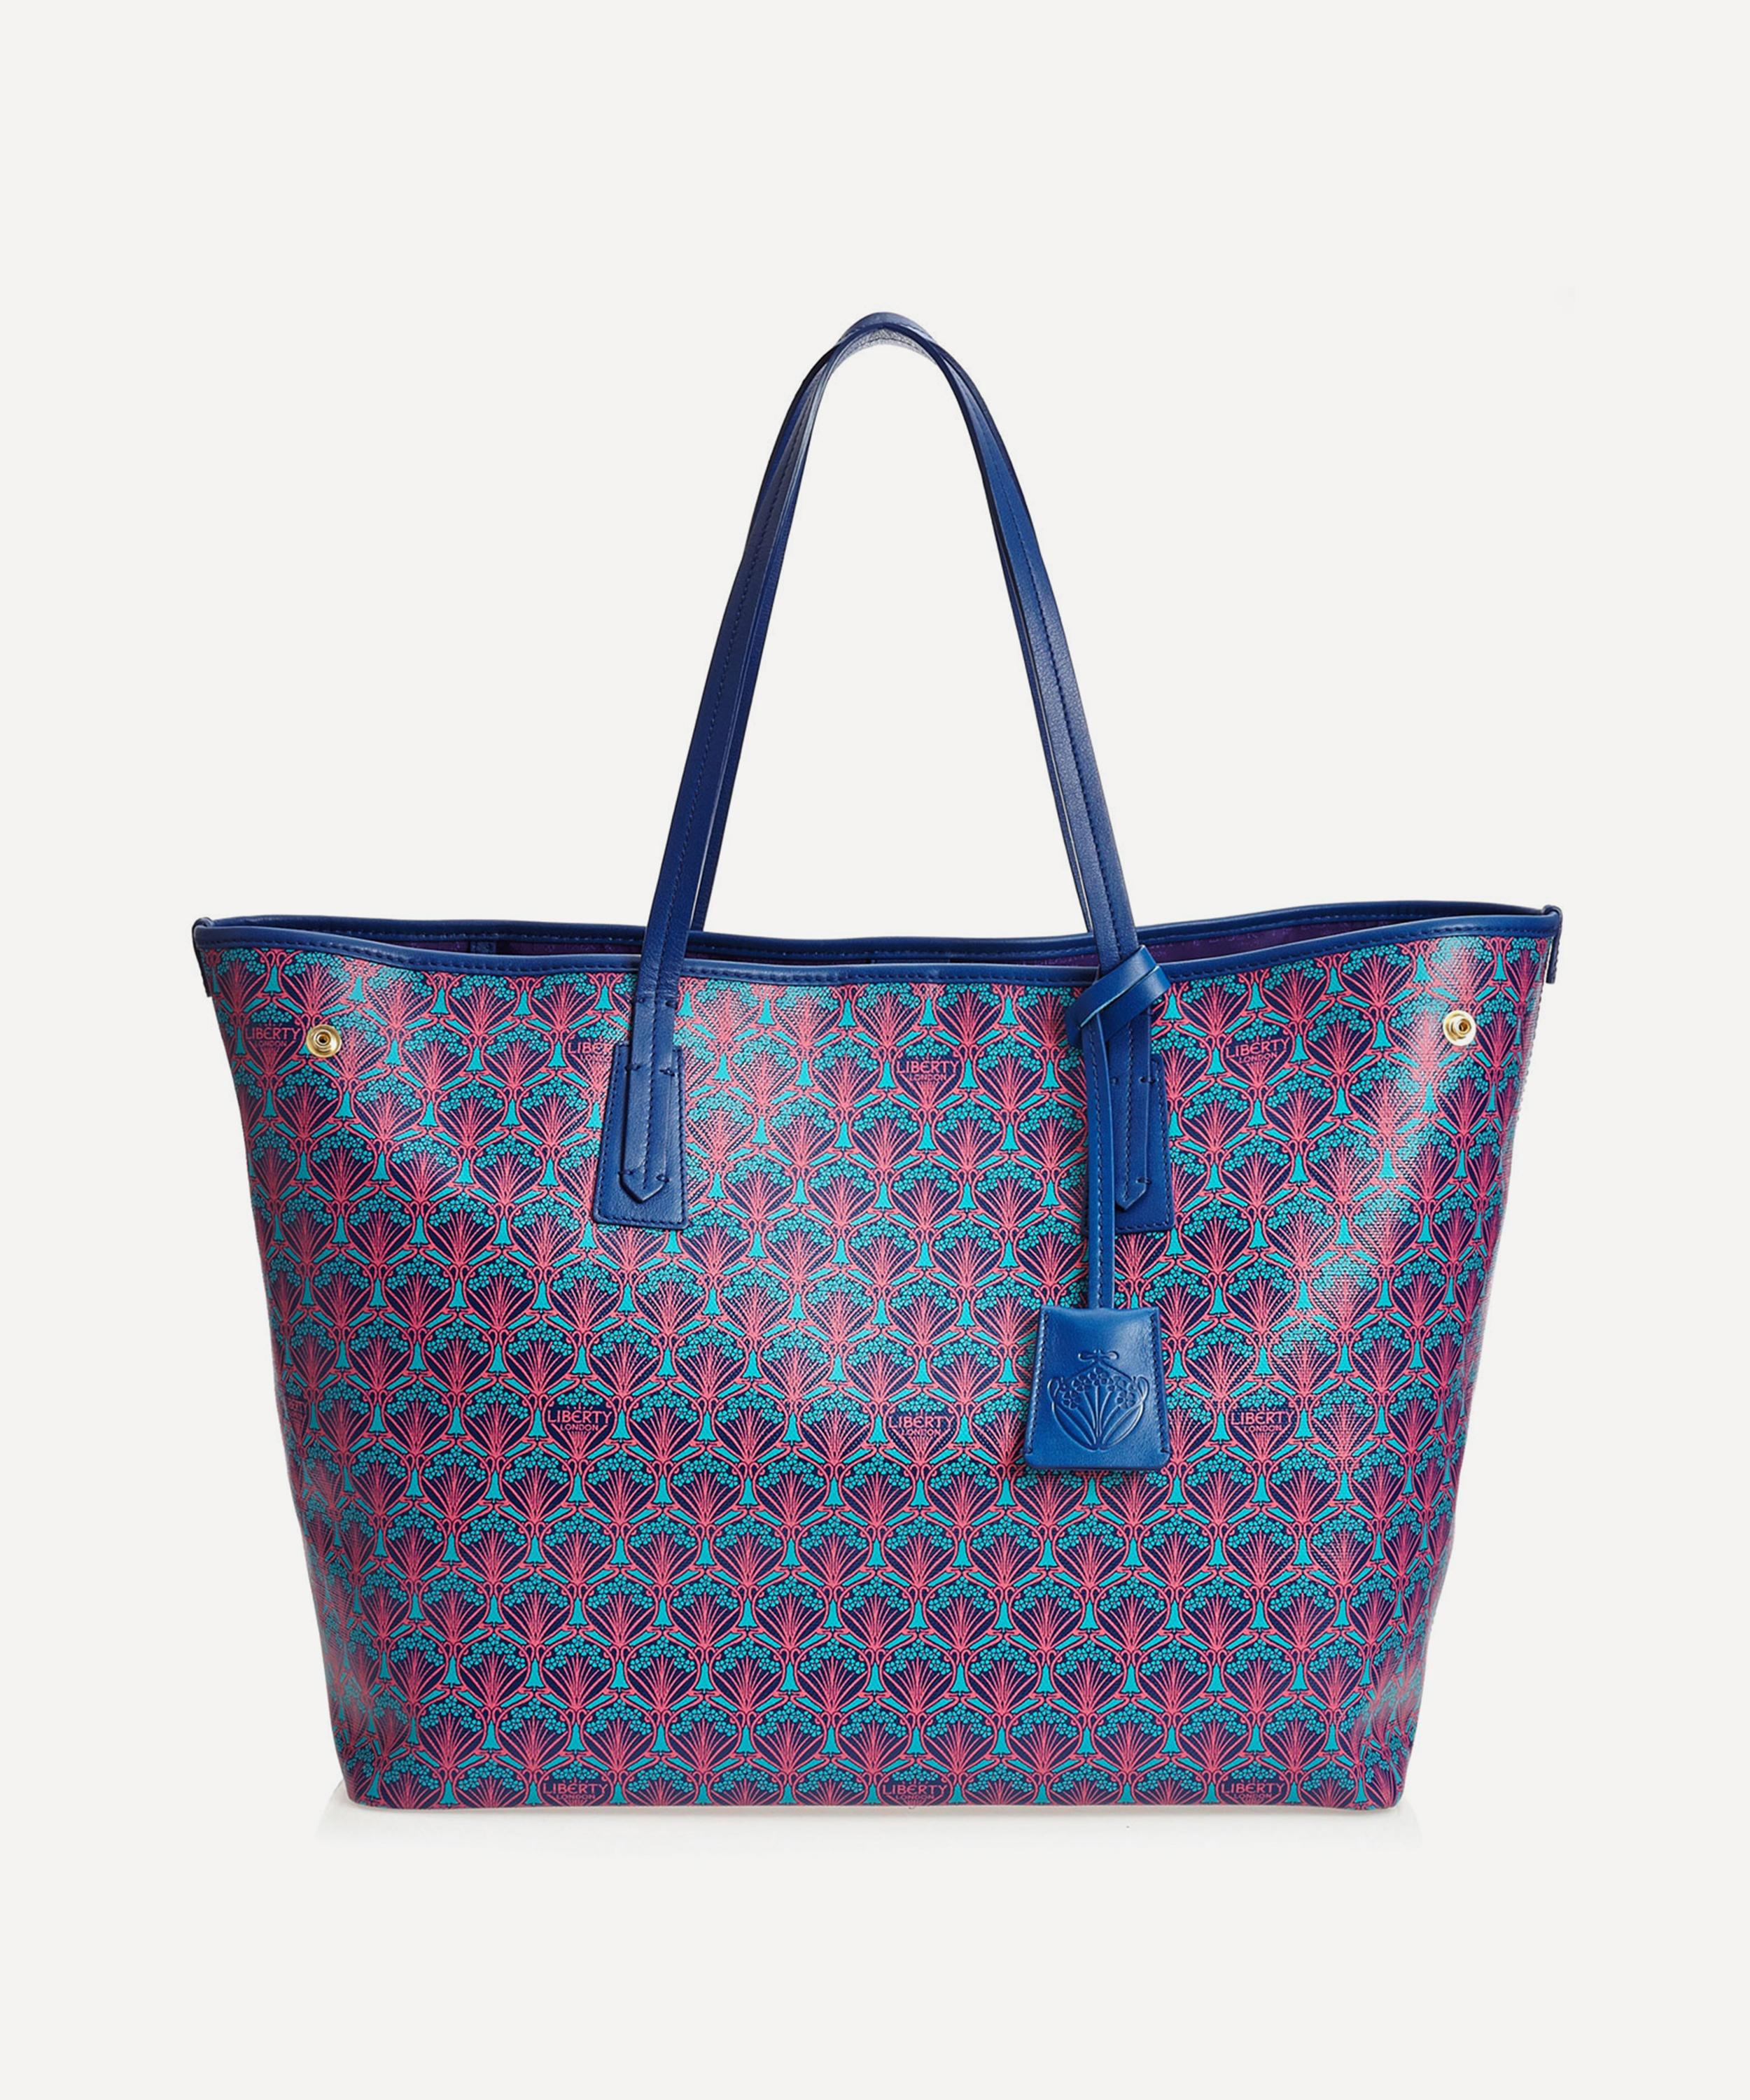 6453a54ed409 Marlborough Tote Bag in Iphis Canvas